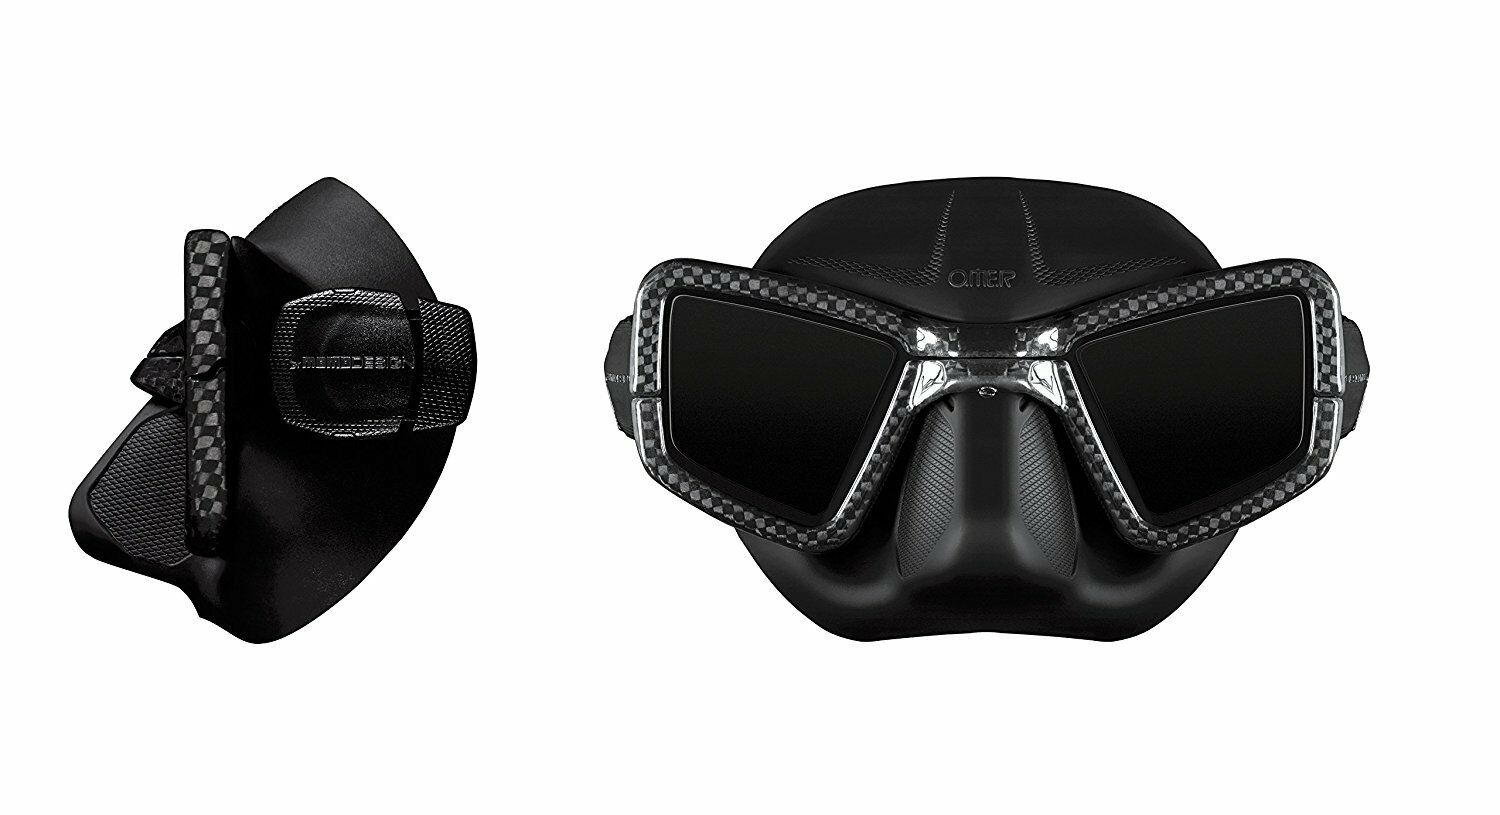 UP-M1C Carbon Mask with Nose Clip